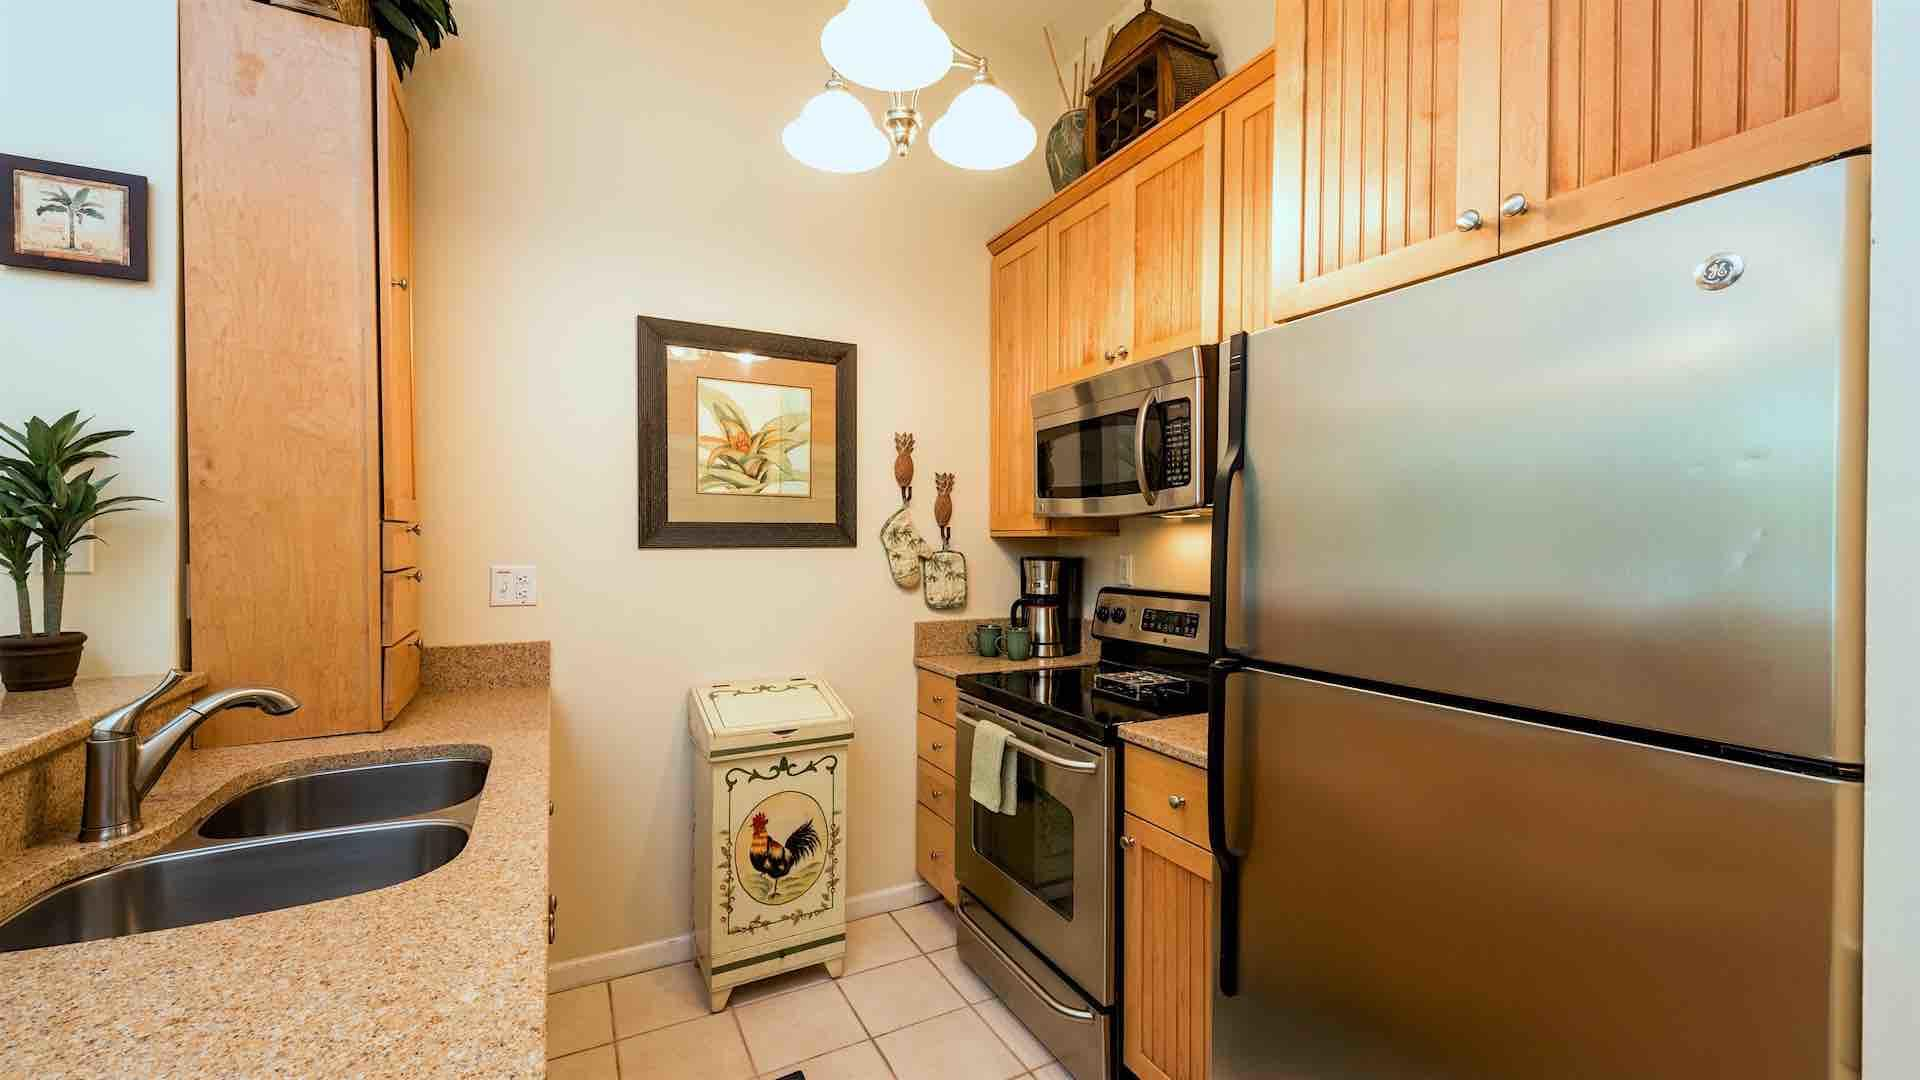 The fully equipped kitchen has top of the line stainless steel appliances and every tool needed to prepare a meal from home...